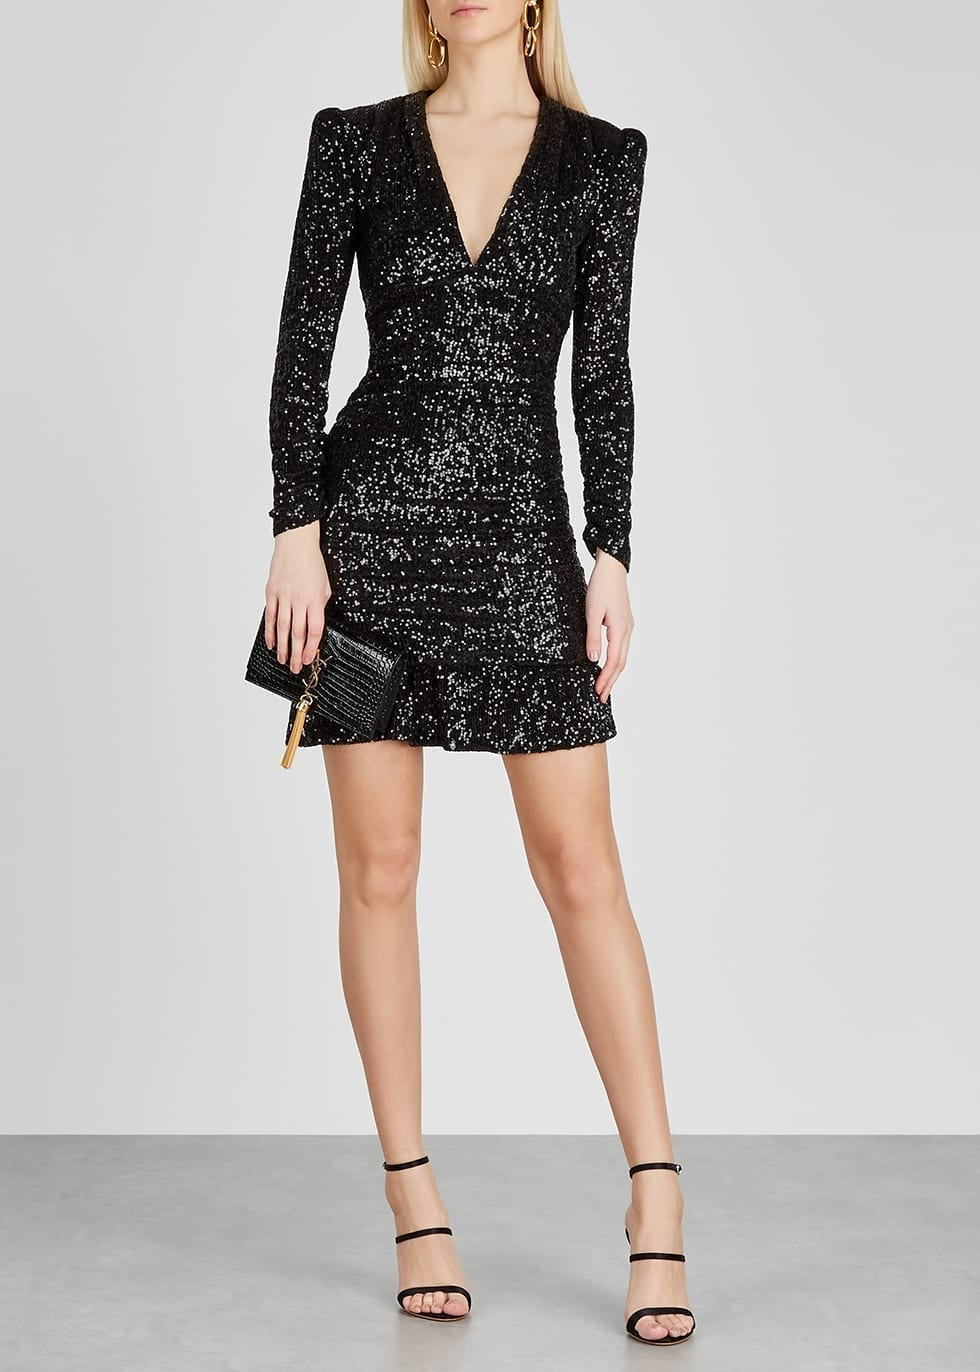 REBECCA VALLANCE Mona Black Sequin Mini Dress